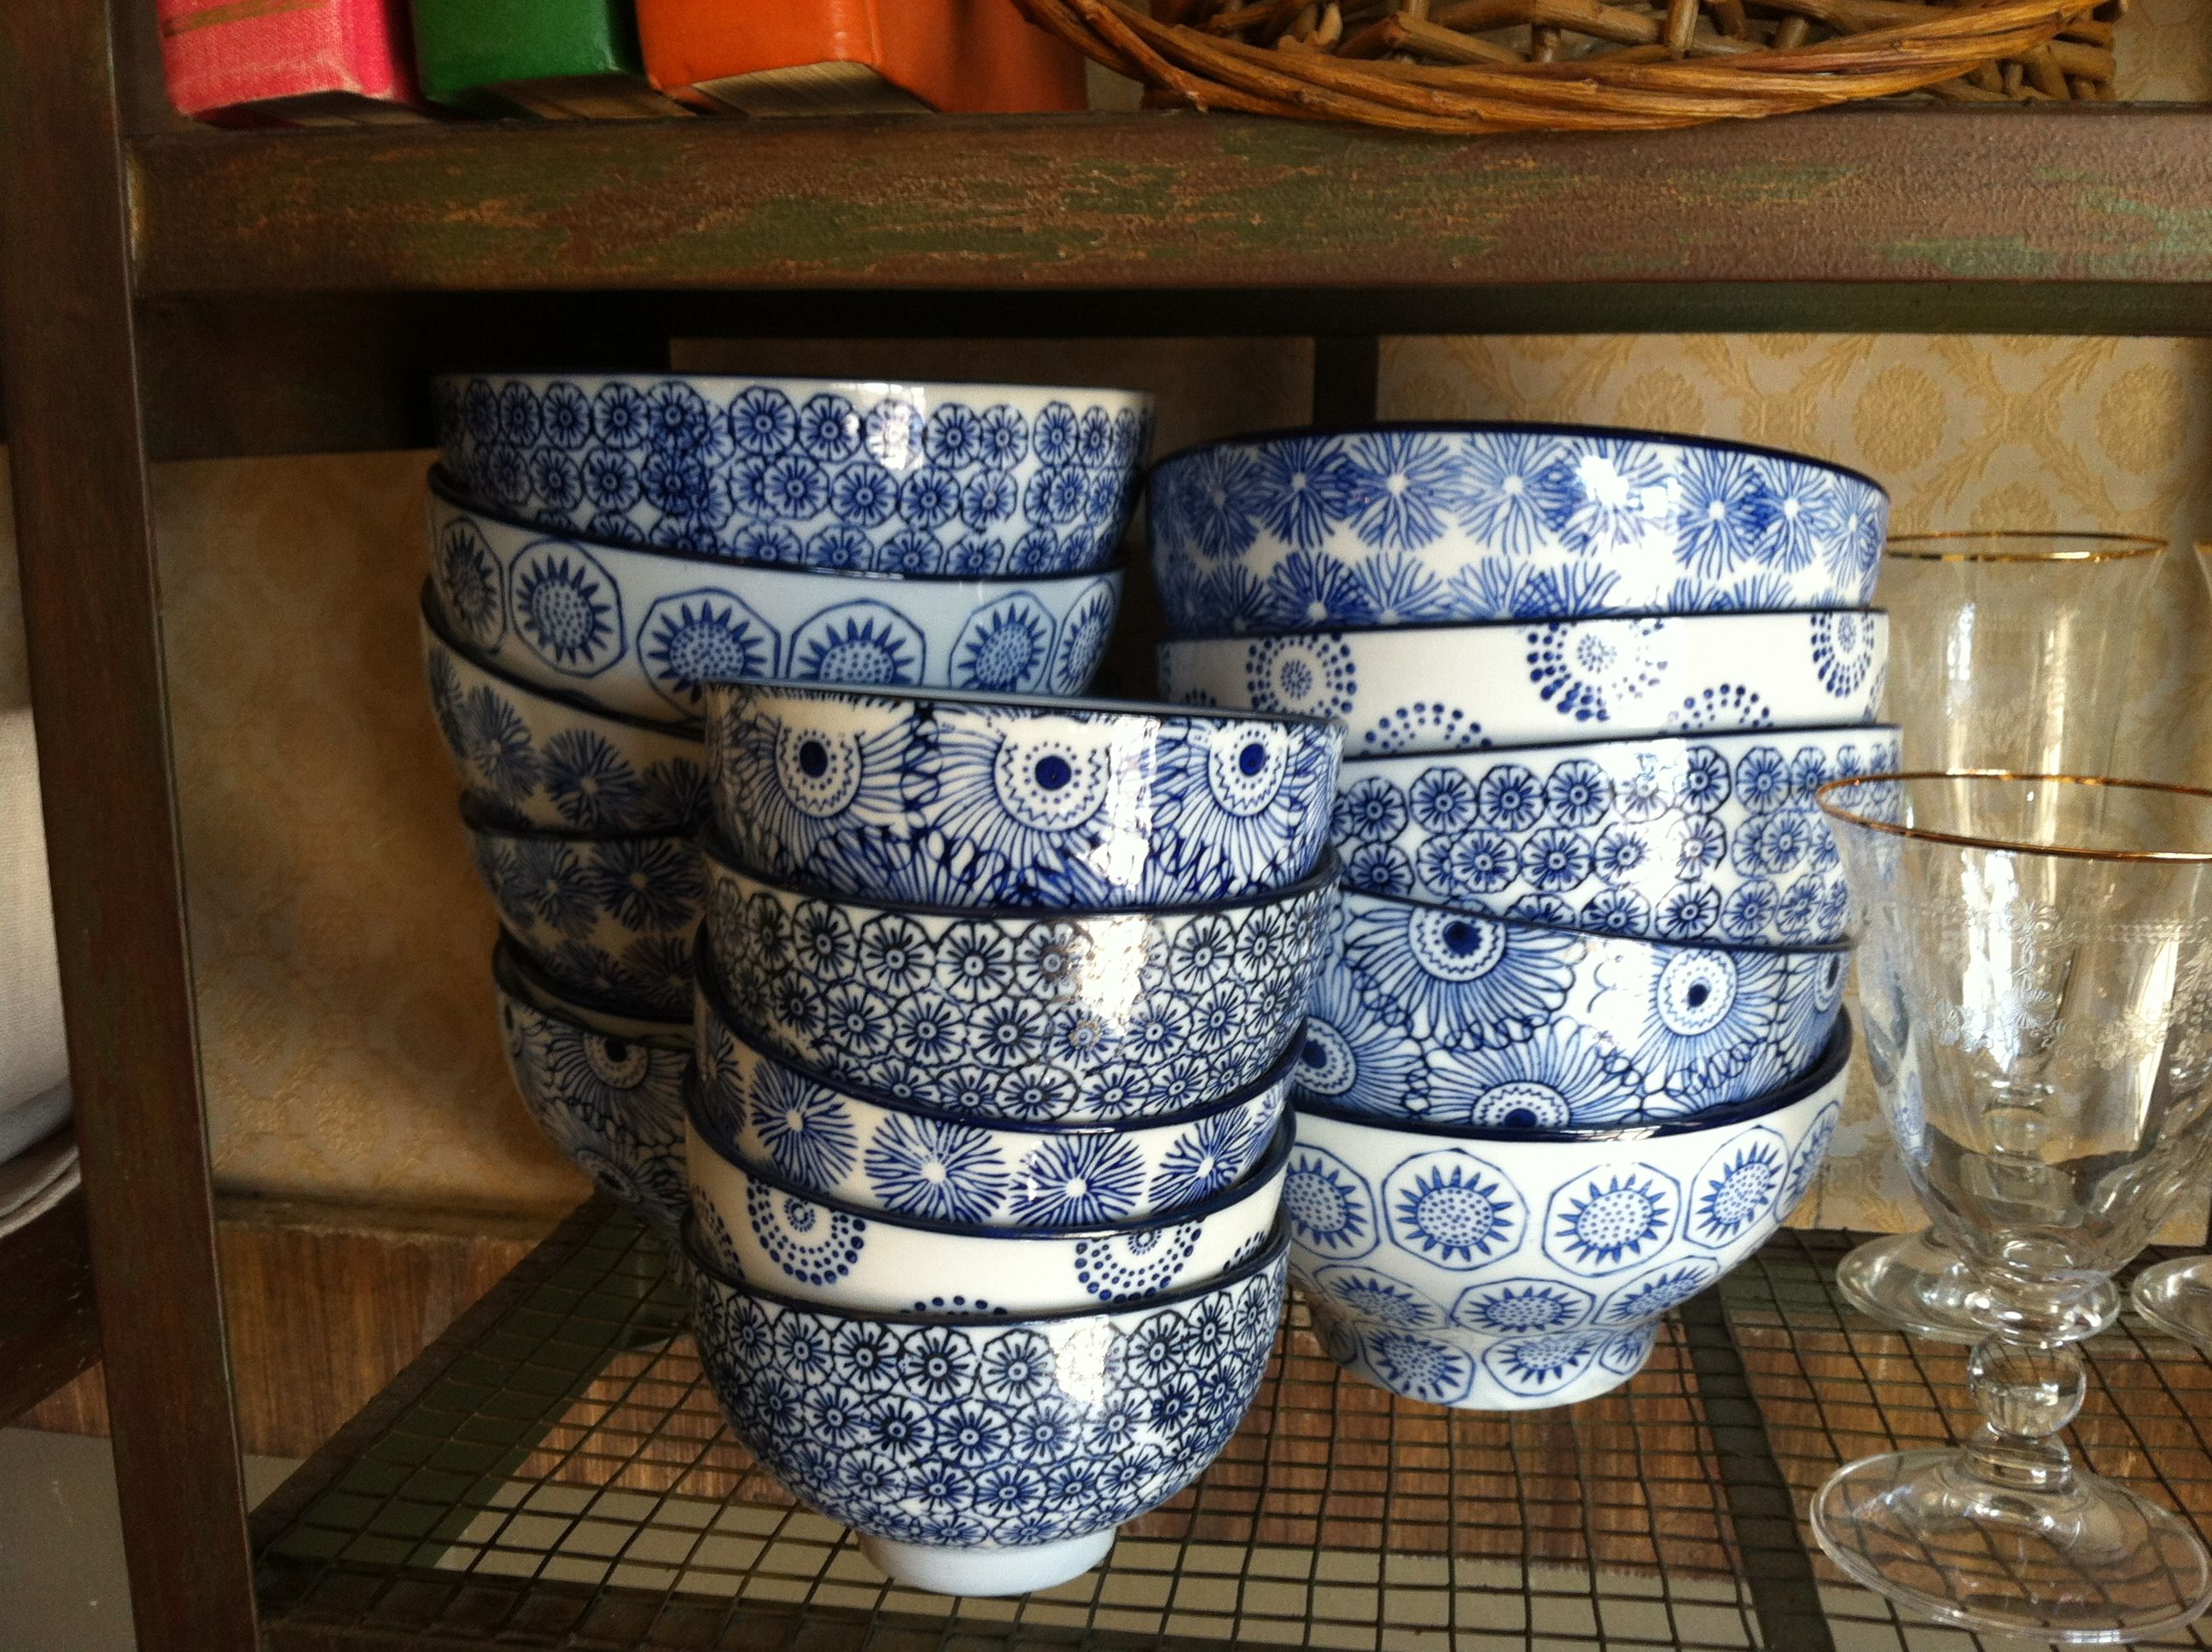 Great bowls. Love the blue & white motif.